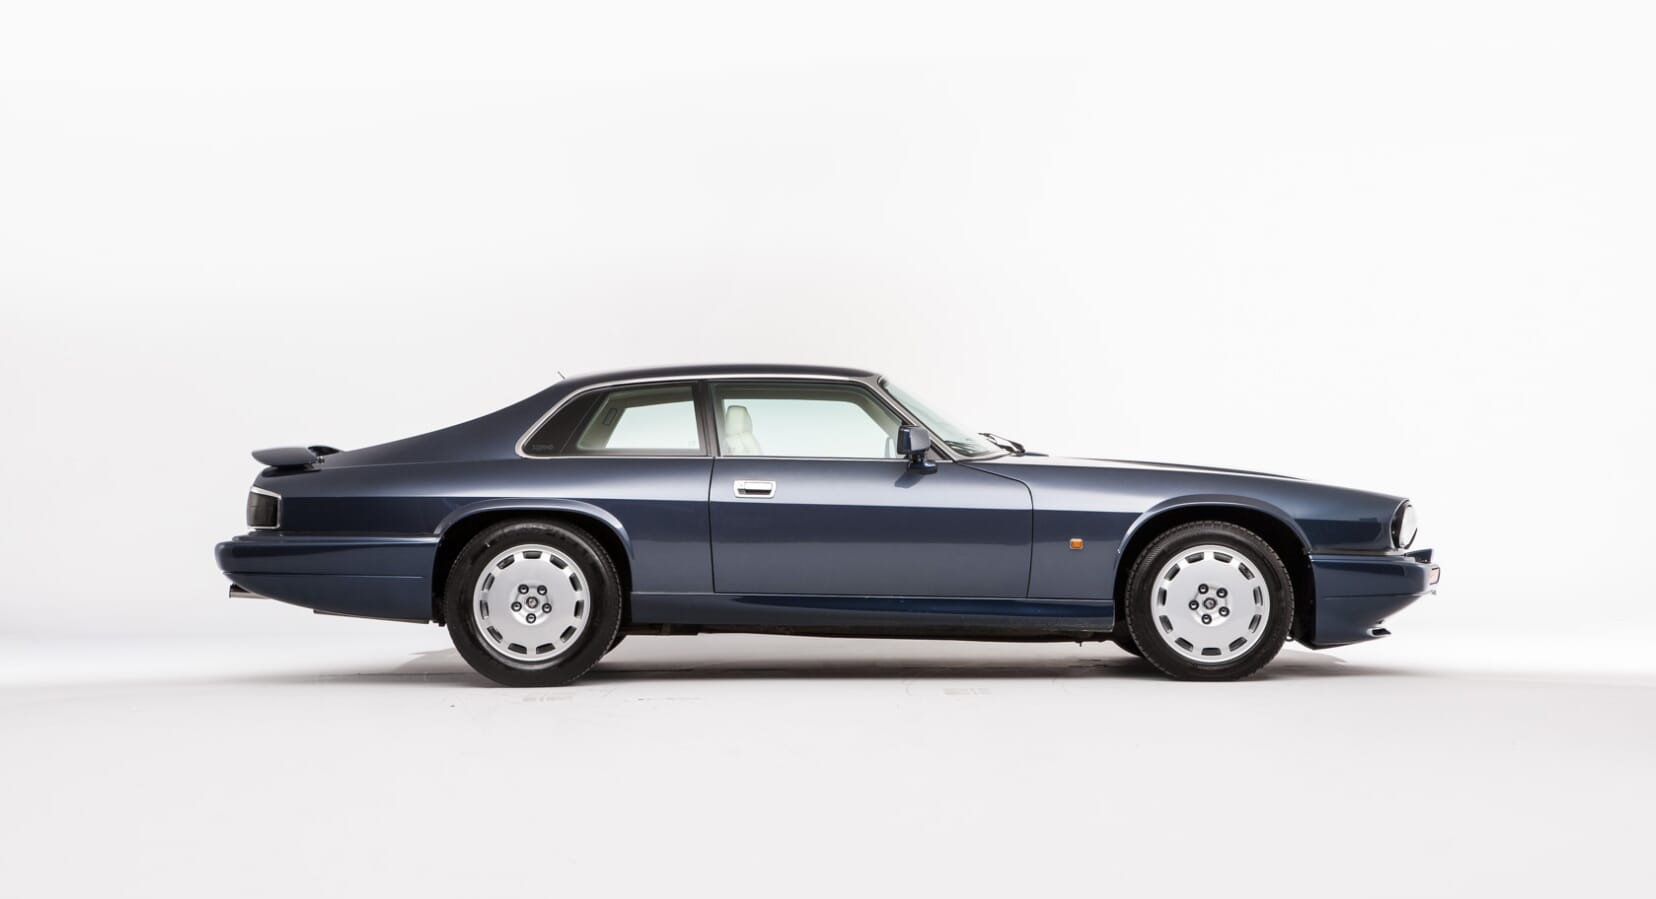 Take a Look at this Pristine Jaguar XJR-S